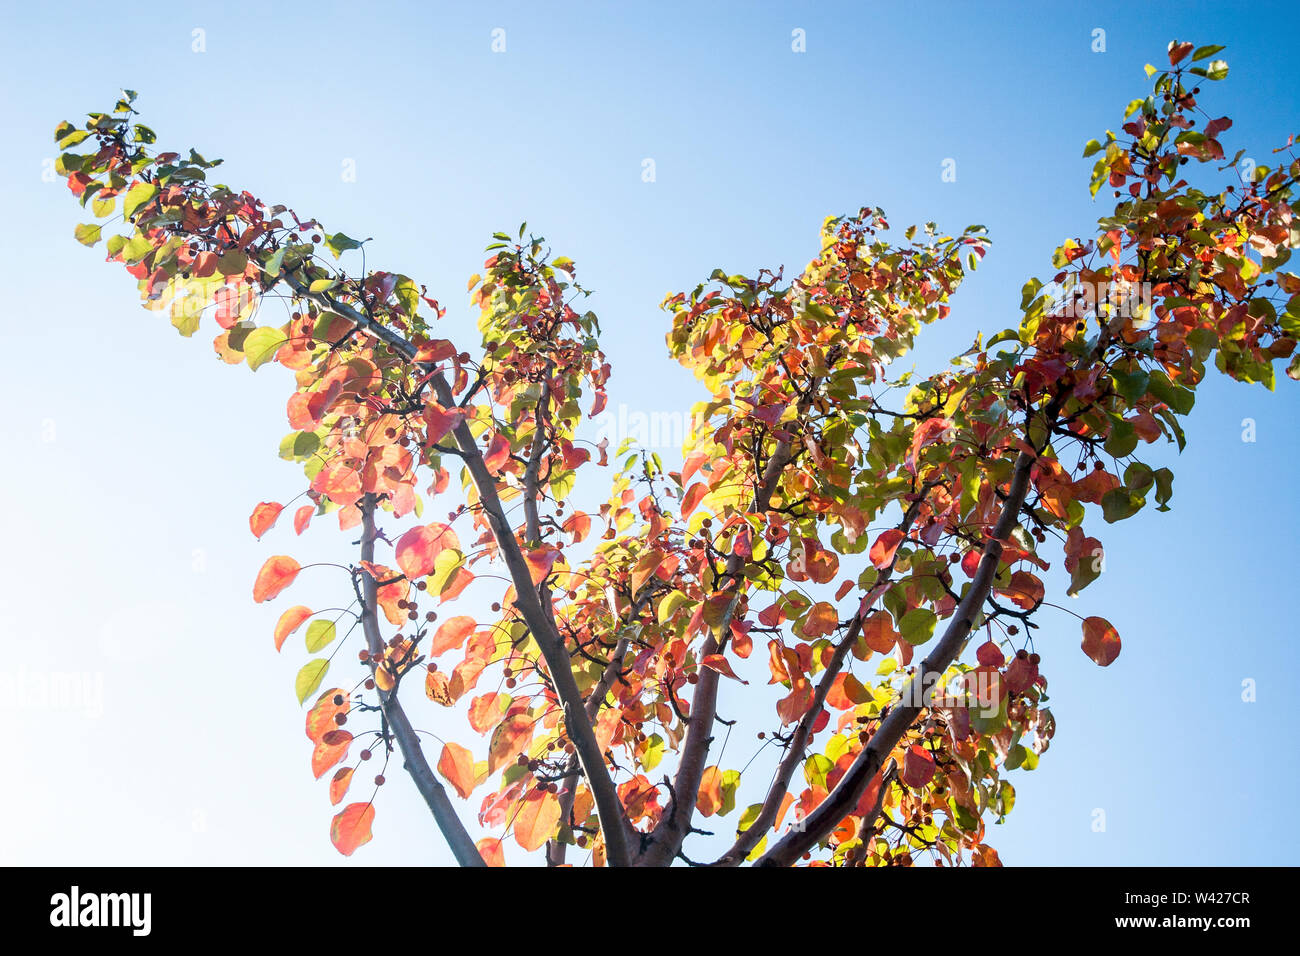 Green and red leafs on fruit tree, sky is blue color, sunlight around the area, natural looking plants, daytime scene. - Stock Image